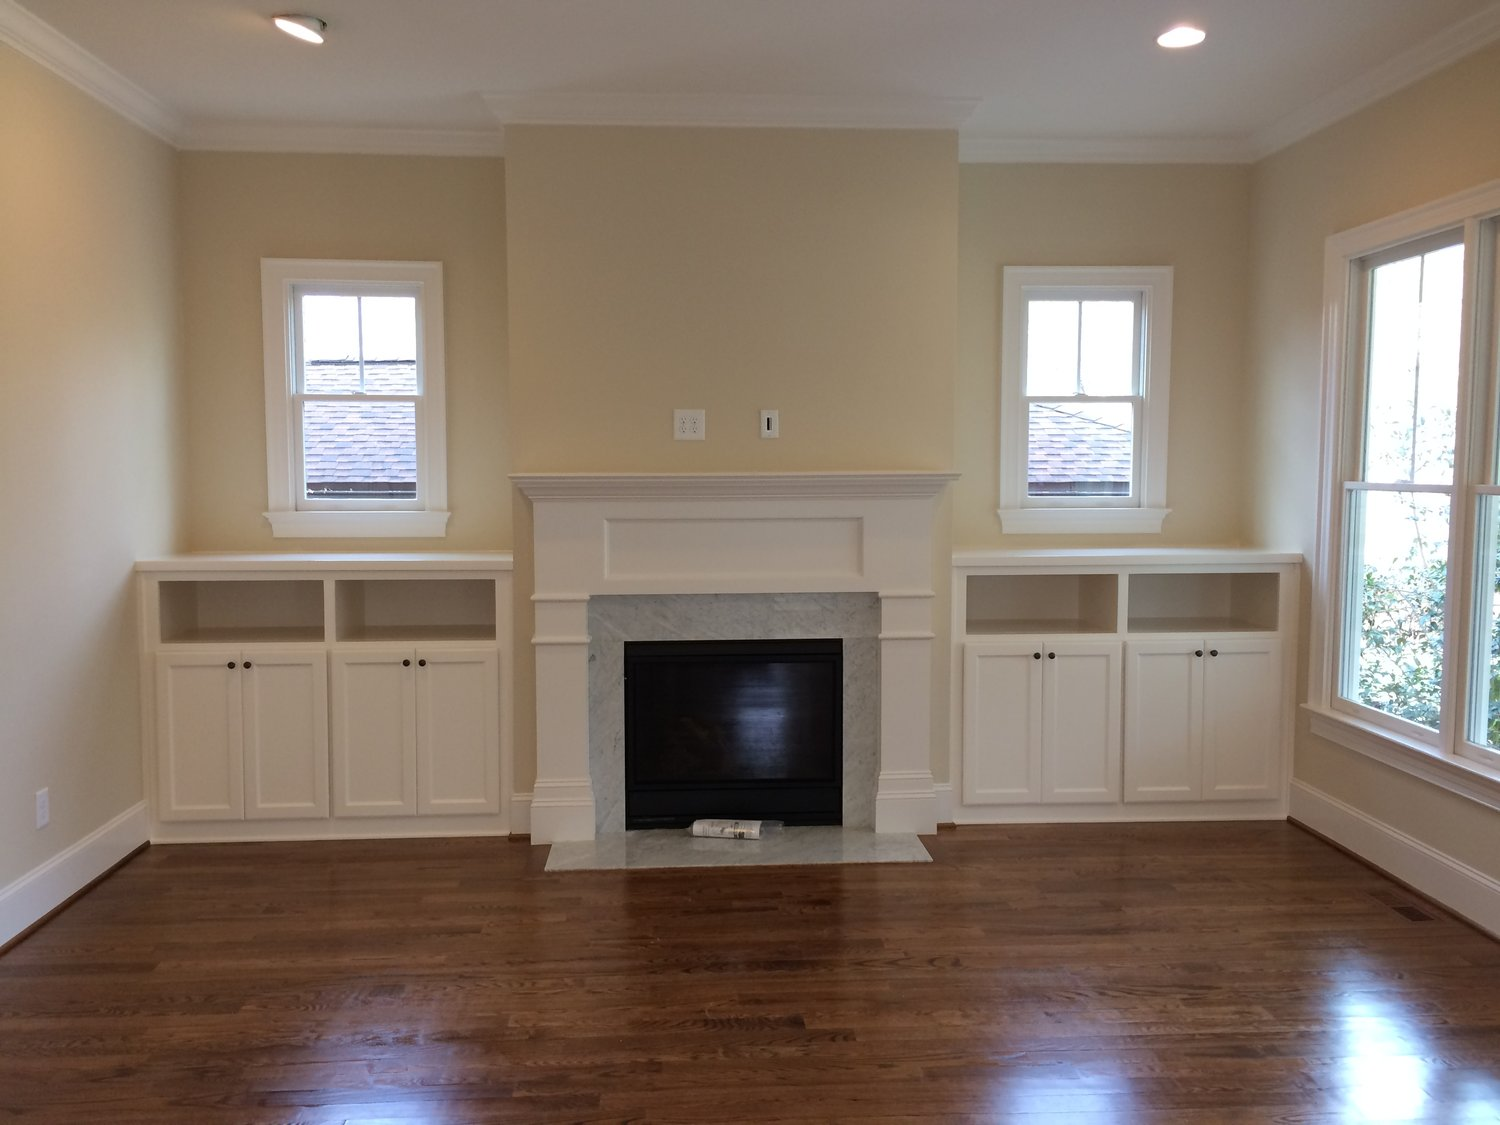 Fireplace Built-Ins with Shaker Doors, Open Cubbies, and Countertops